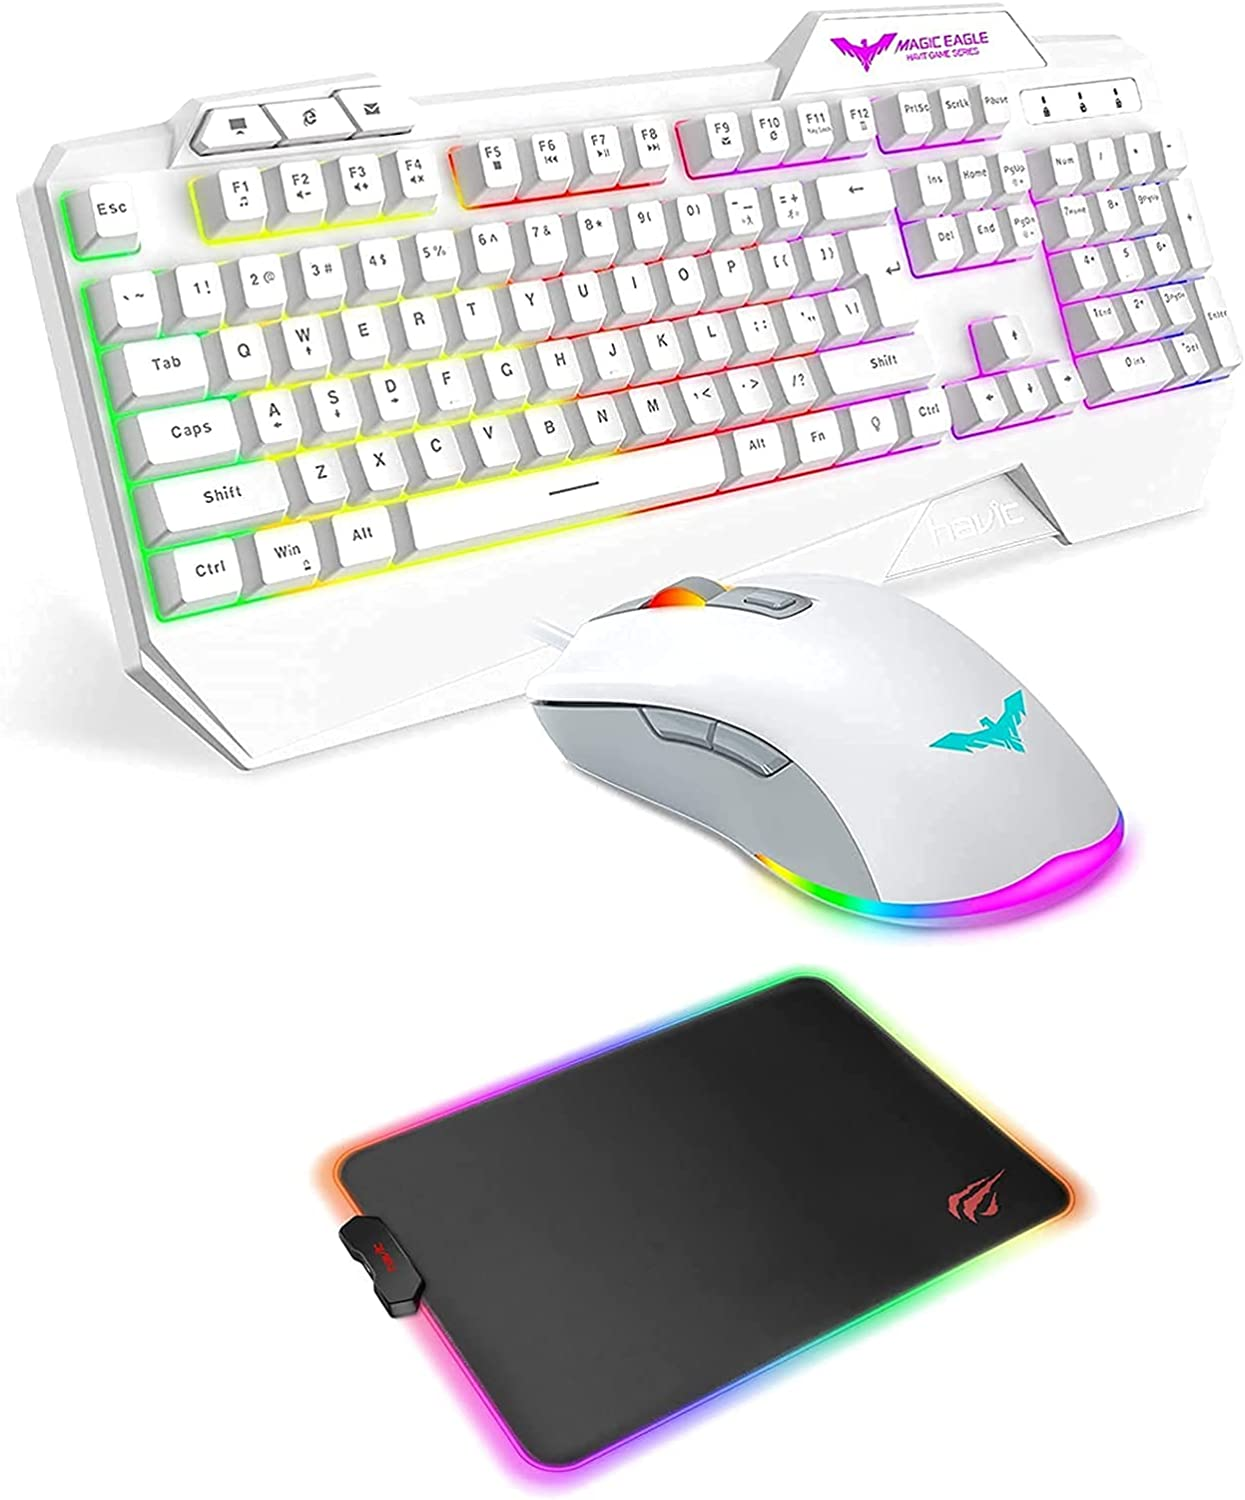 Havit White Rainbow Backlit Wired Gaming Keyboard Mouse Combo and Havit RGB Gaming Mouse Pad for Laptop Computer PC Games